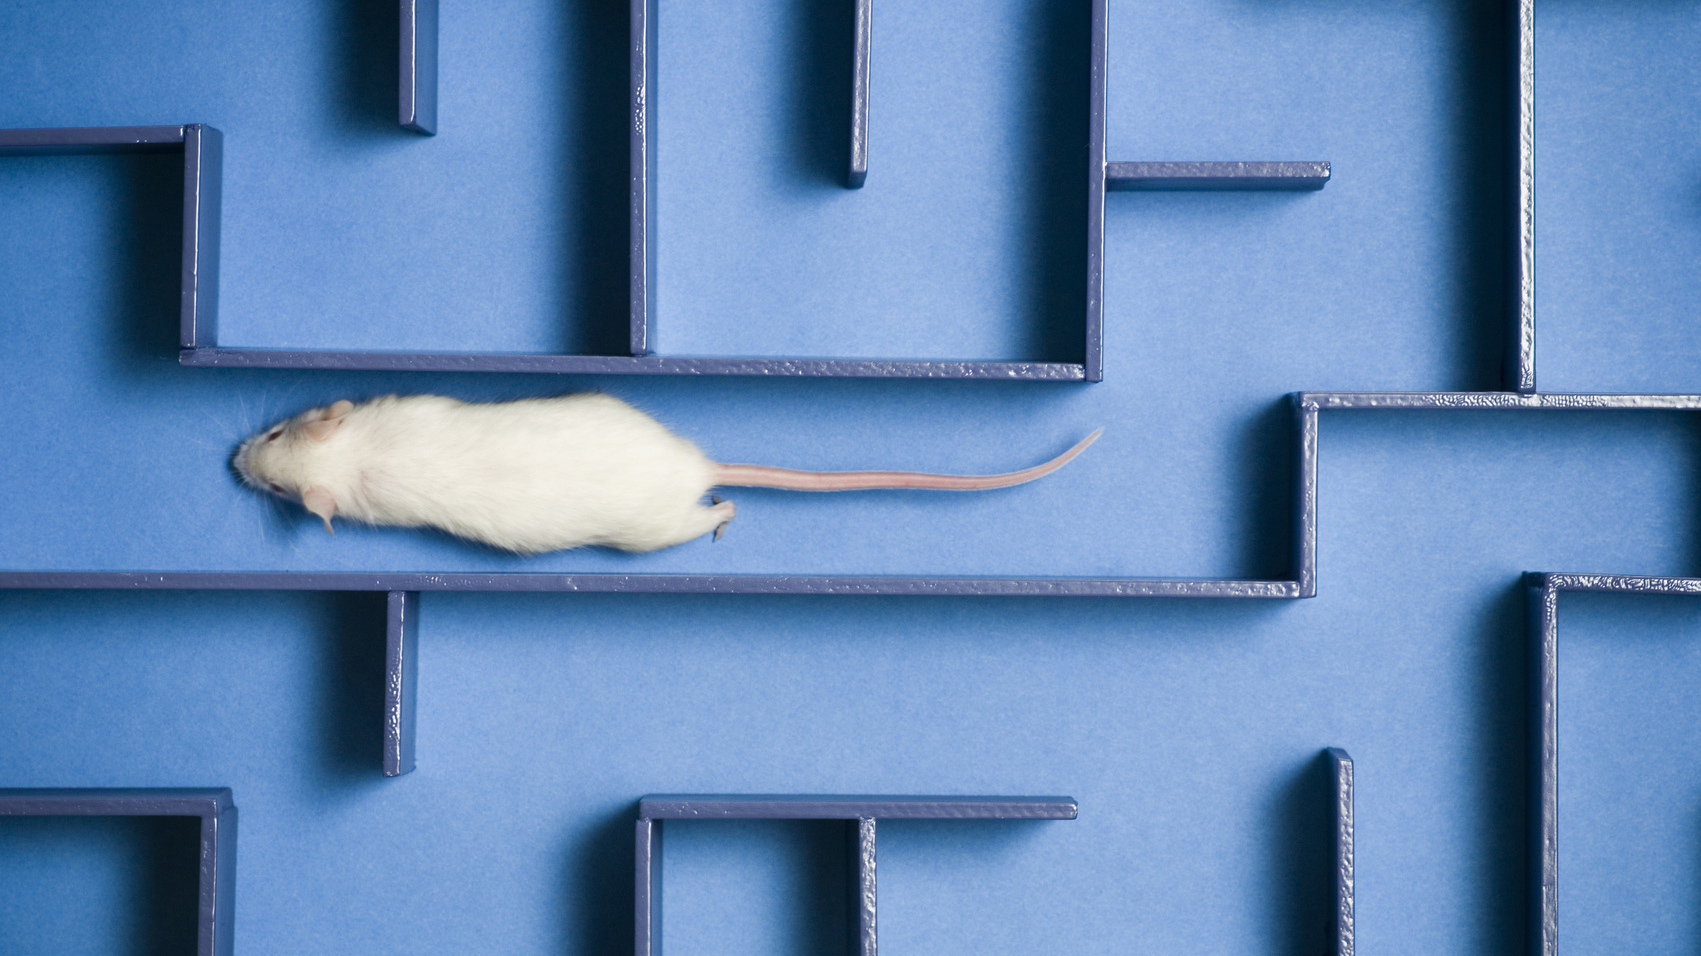 Researchers found a protein in human umbilical cord blood plasma improved learning and memory in older mice, but there